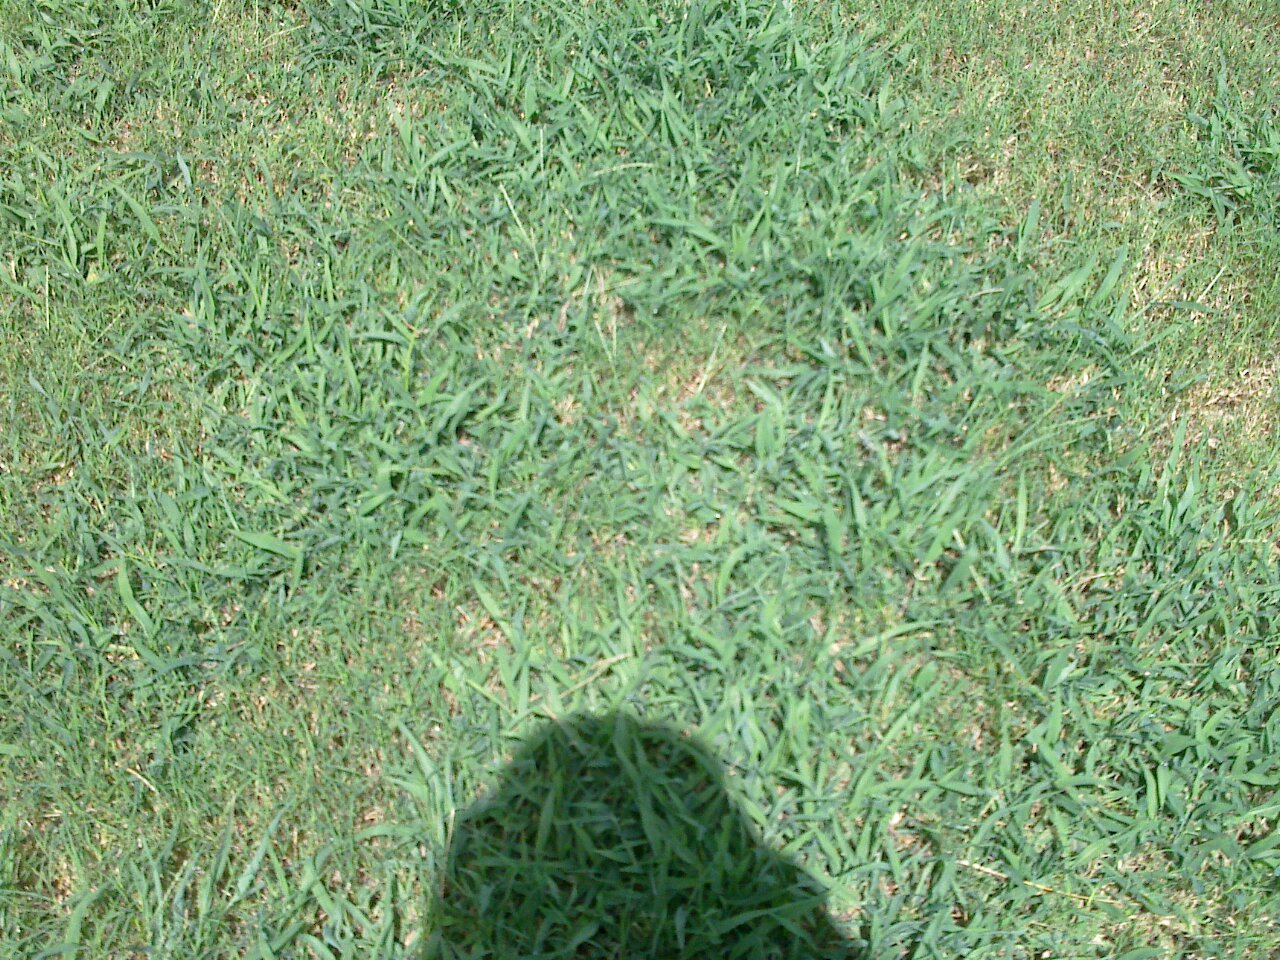 Types of lawn grass weeds - Weed Control For Bermuda Grass Lawn 20100808_001 Jpg